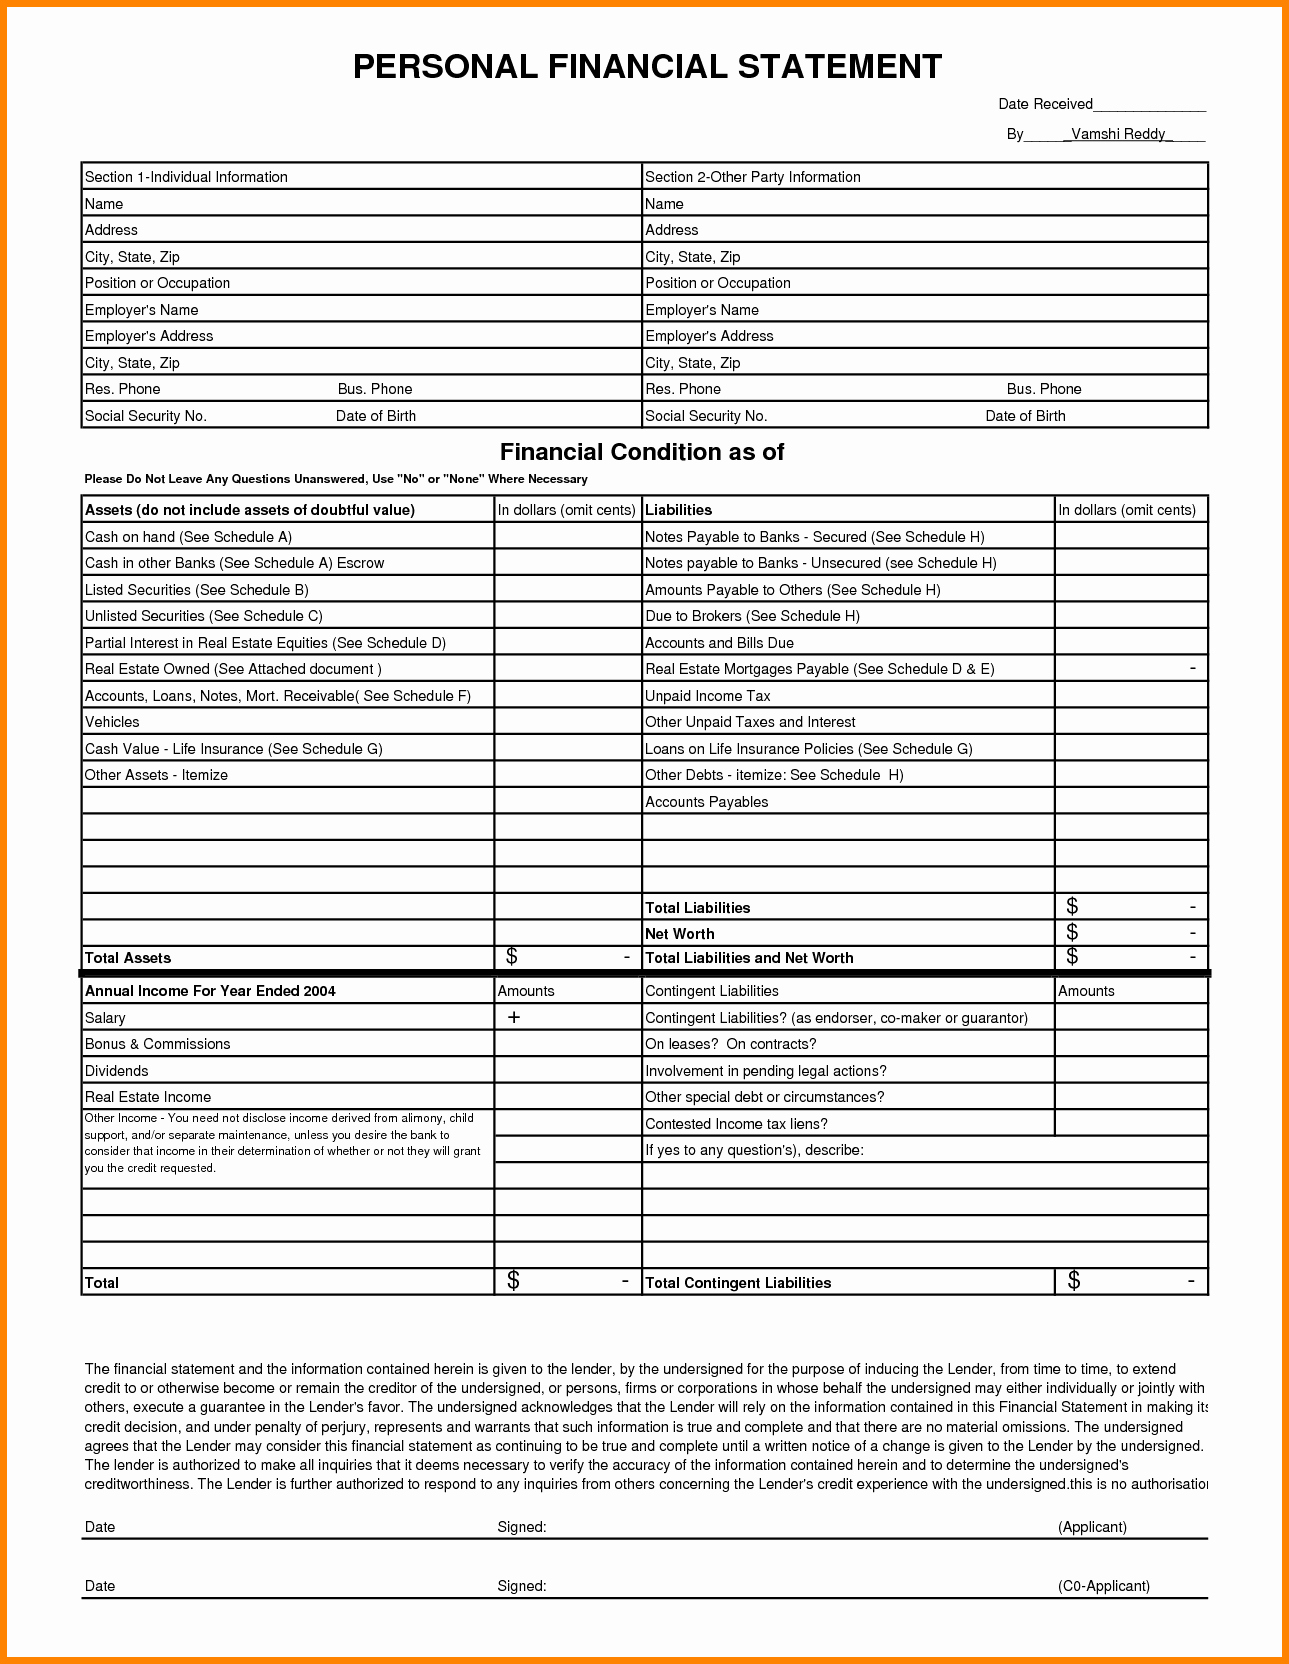 Personal Financial Statement Excel Fresh 8 Personal Financial Statement Template Excel